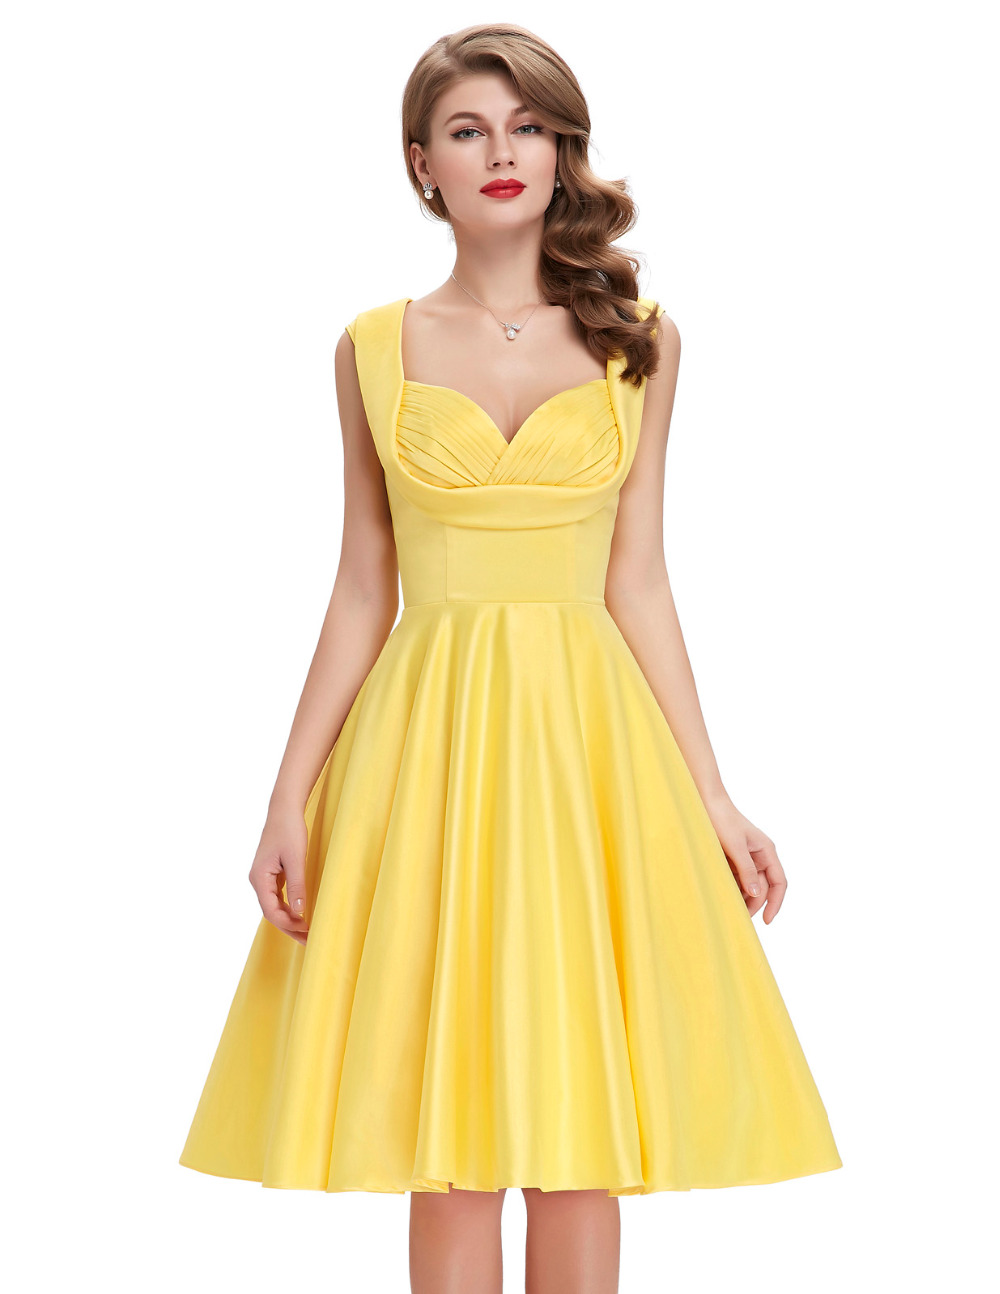 1950s vintage pinup dresses 2016 new arrival summer women for Wedding dresses pin up style